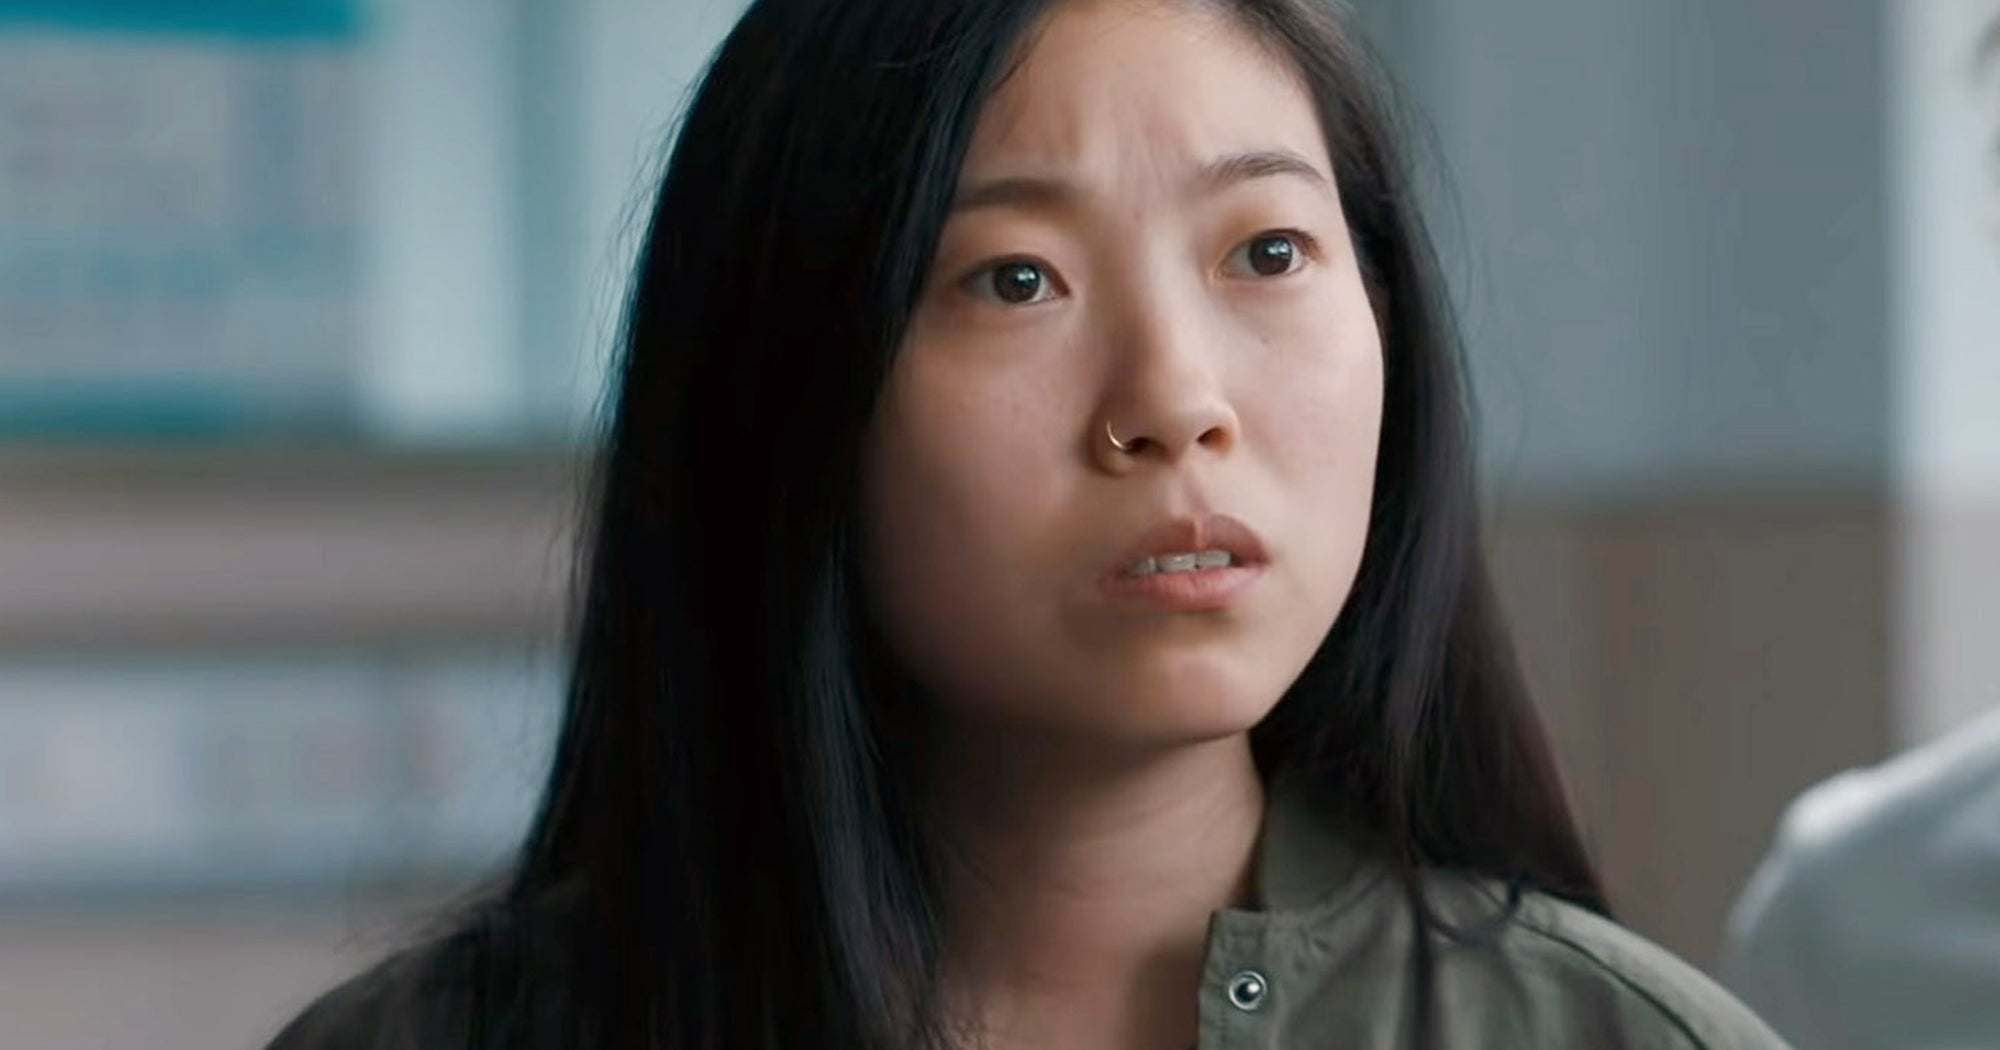 The Awkwafina Oscars Snub Is Even Worse Than You Think